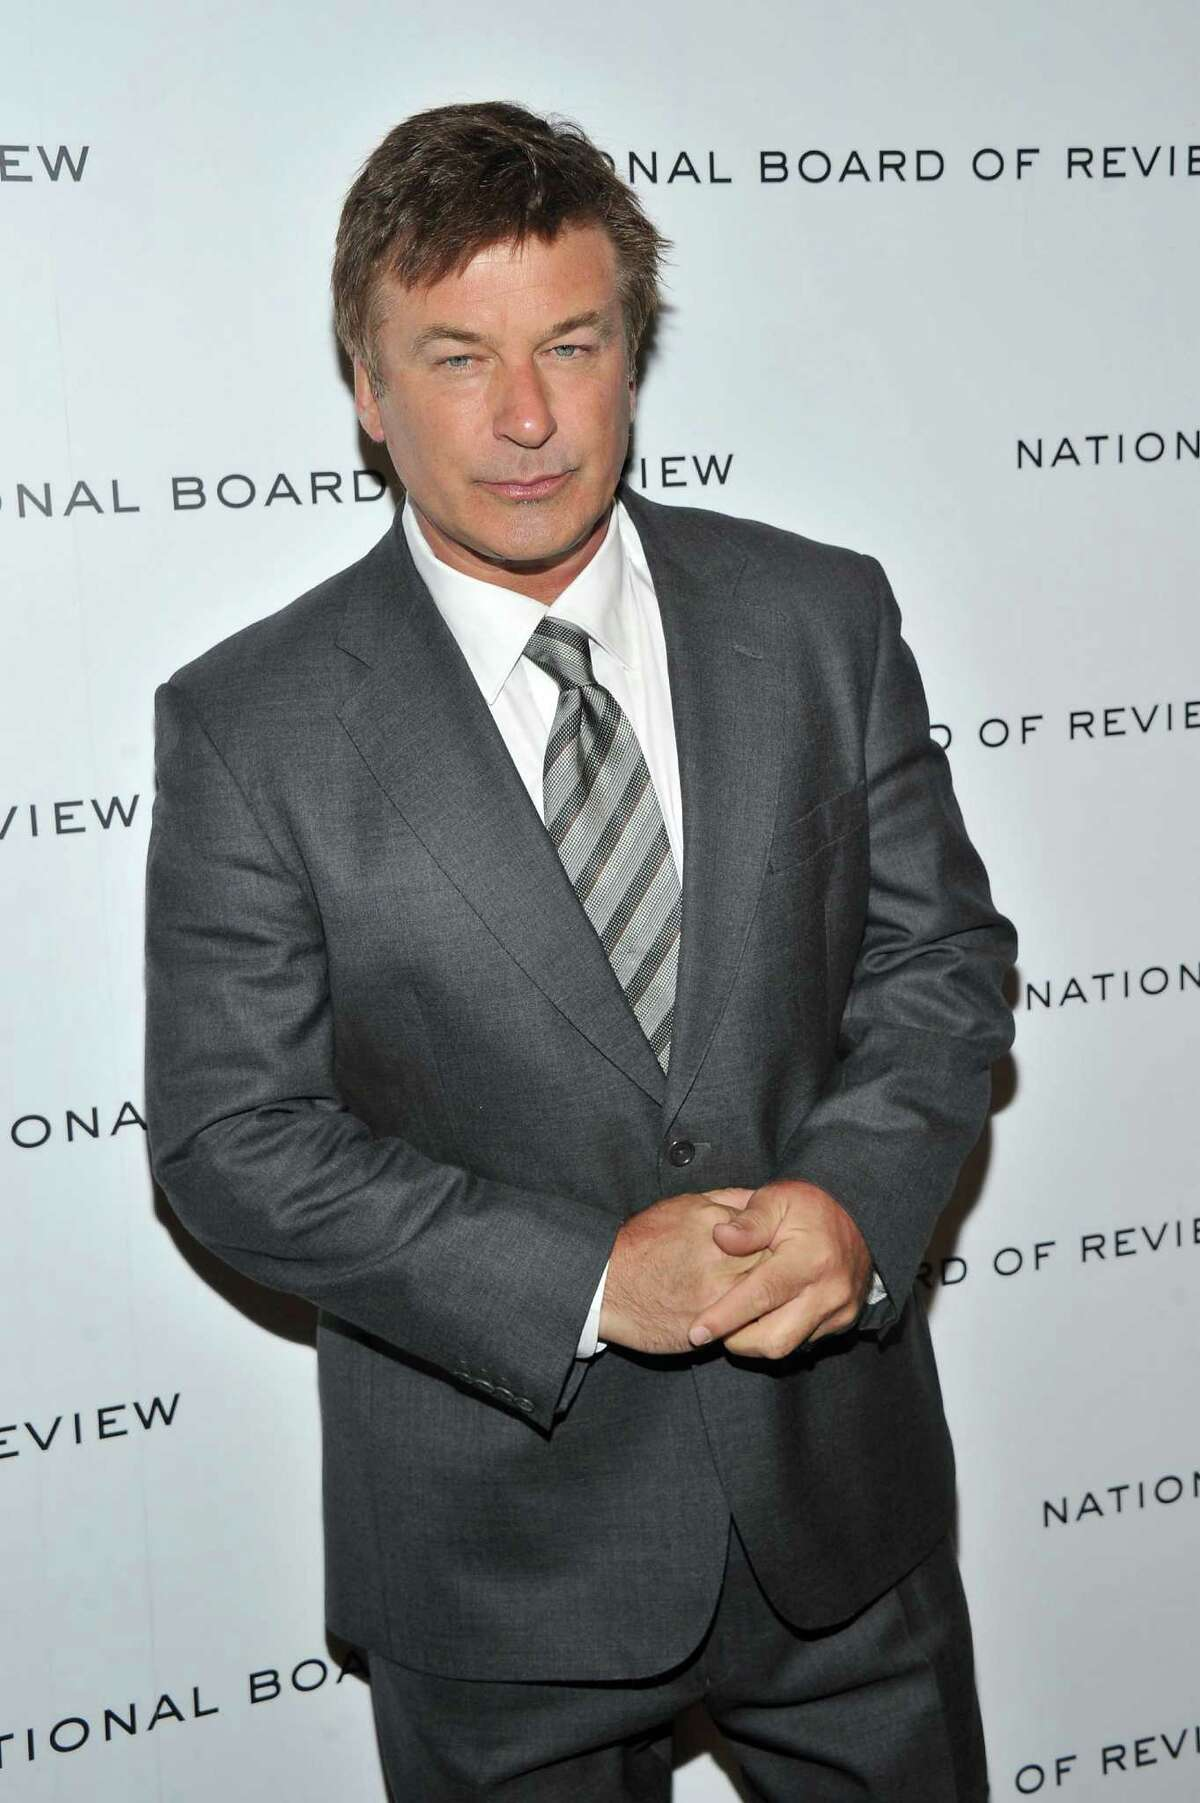 Actor Alec Baldwin recently stopped eating meat, as well as narrated a PETA video, Meet Your Meat.